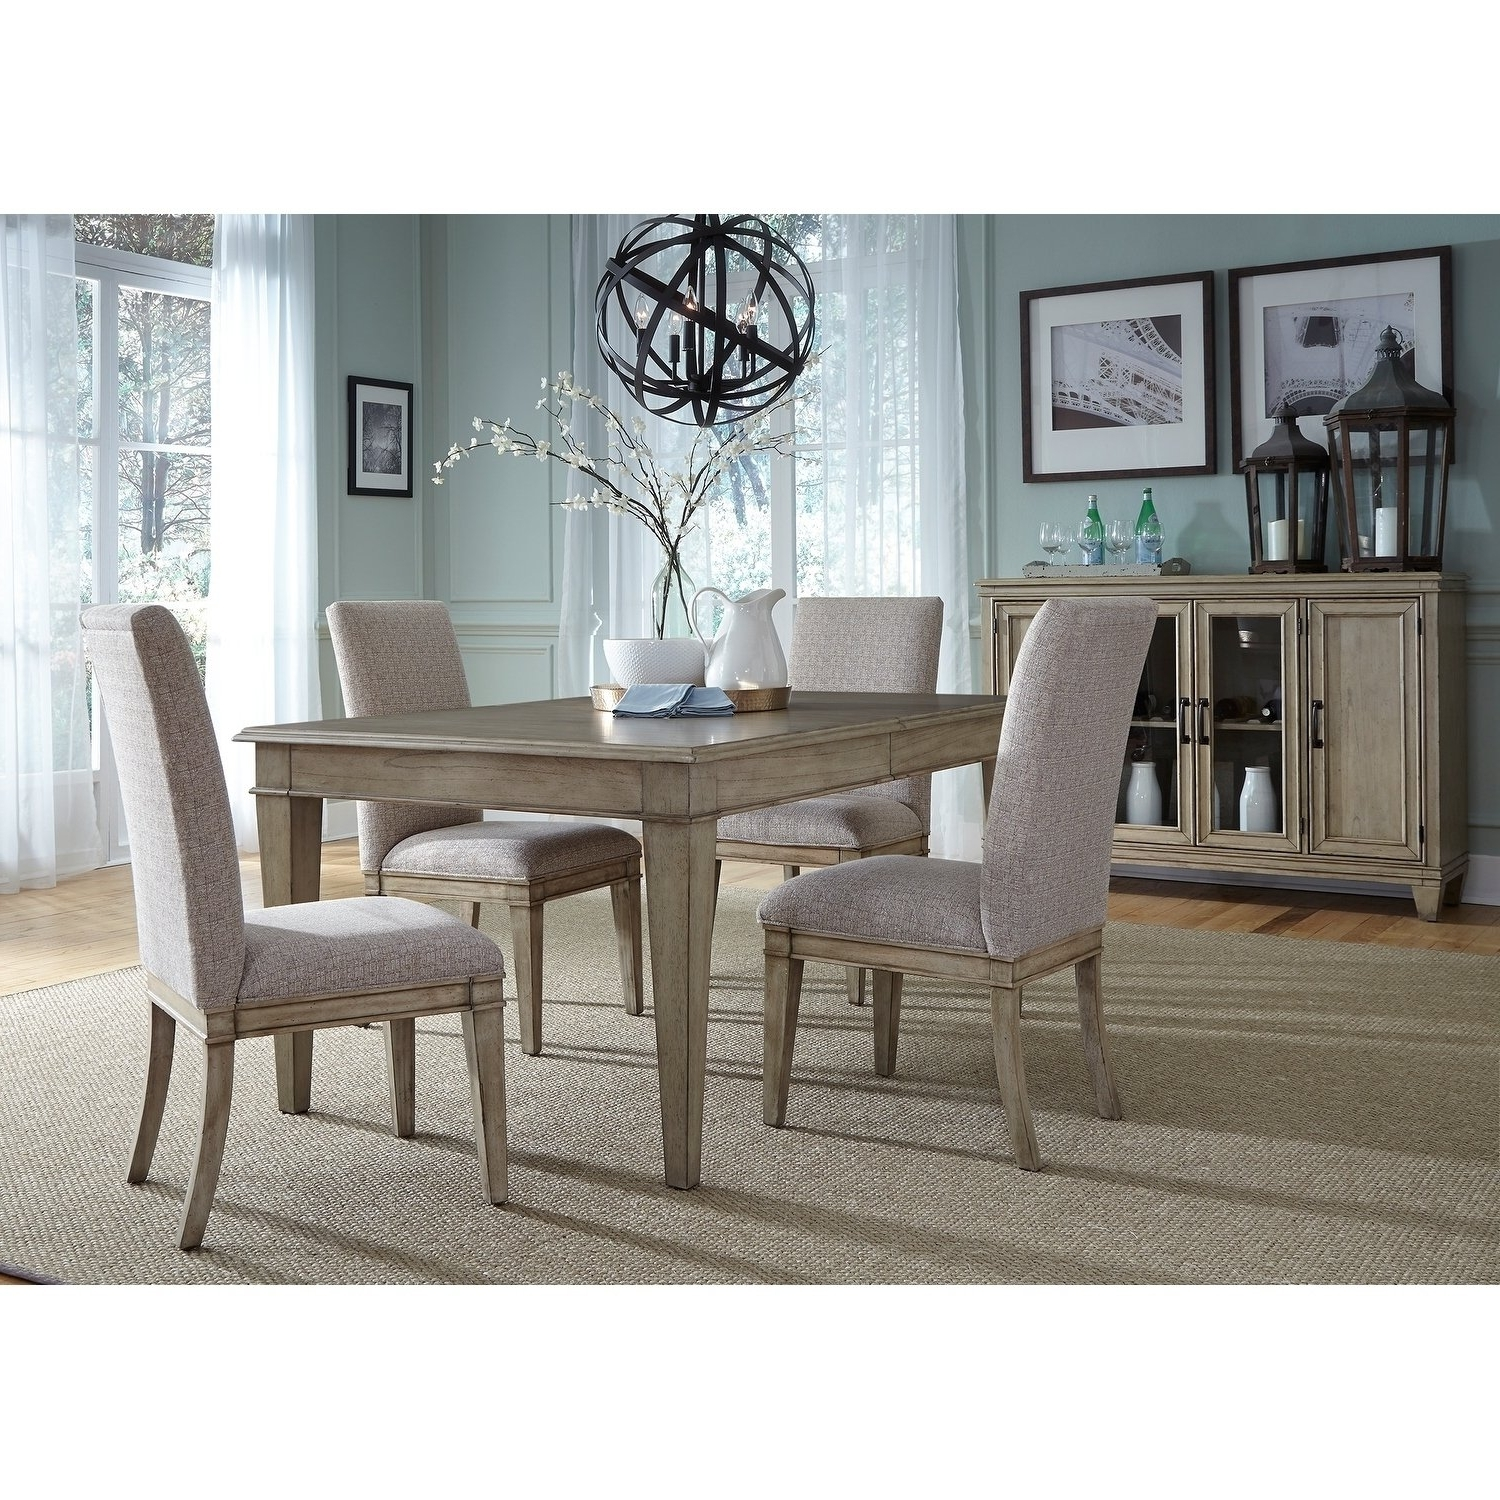 Most Recently Released Jaxon 5 Piece Extension Round Dining Sets With Wood Chairs Throughout Grayton Grove Driftwood Opt 5 Piece Rectangular Dining Table Set (View 15 of 25)